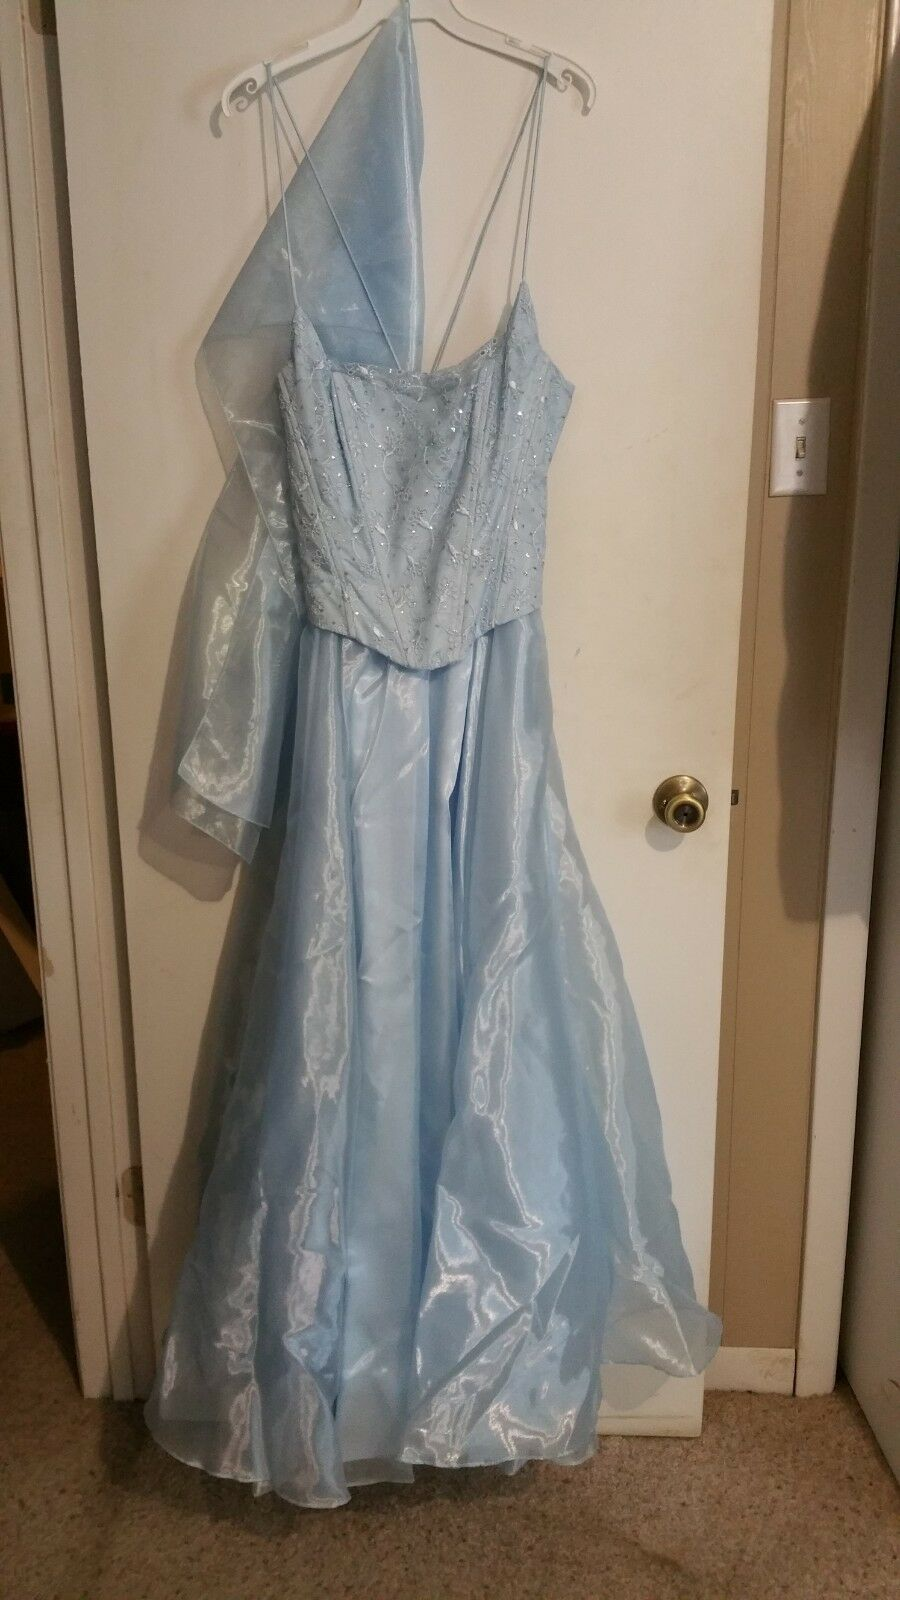 Icy blue formal / prom dress w/ shawl, corset style bodice, full skirt, large